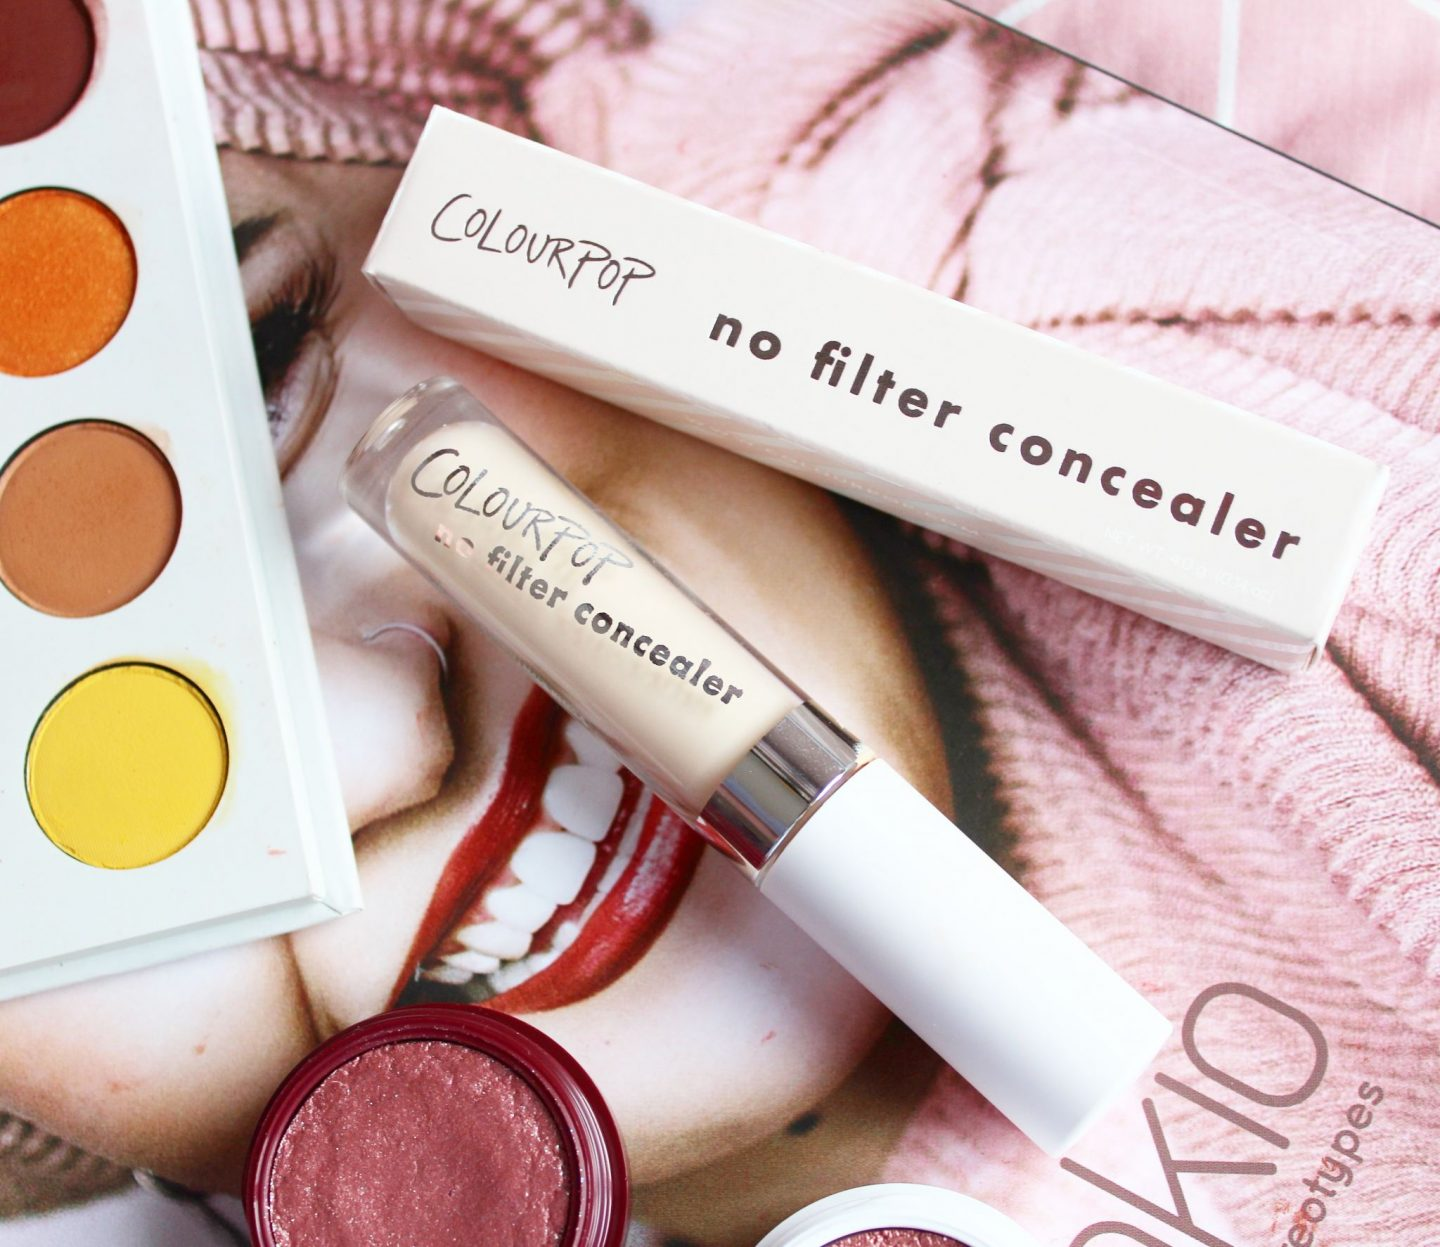 ColourPop No Filter Concealer in Fair 5 Review